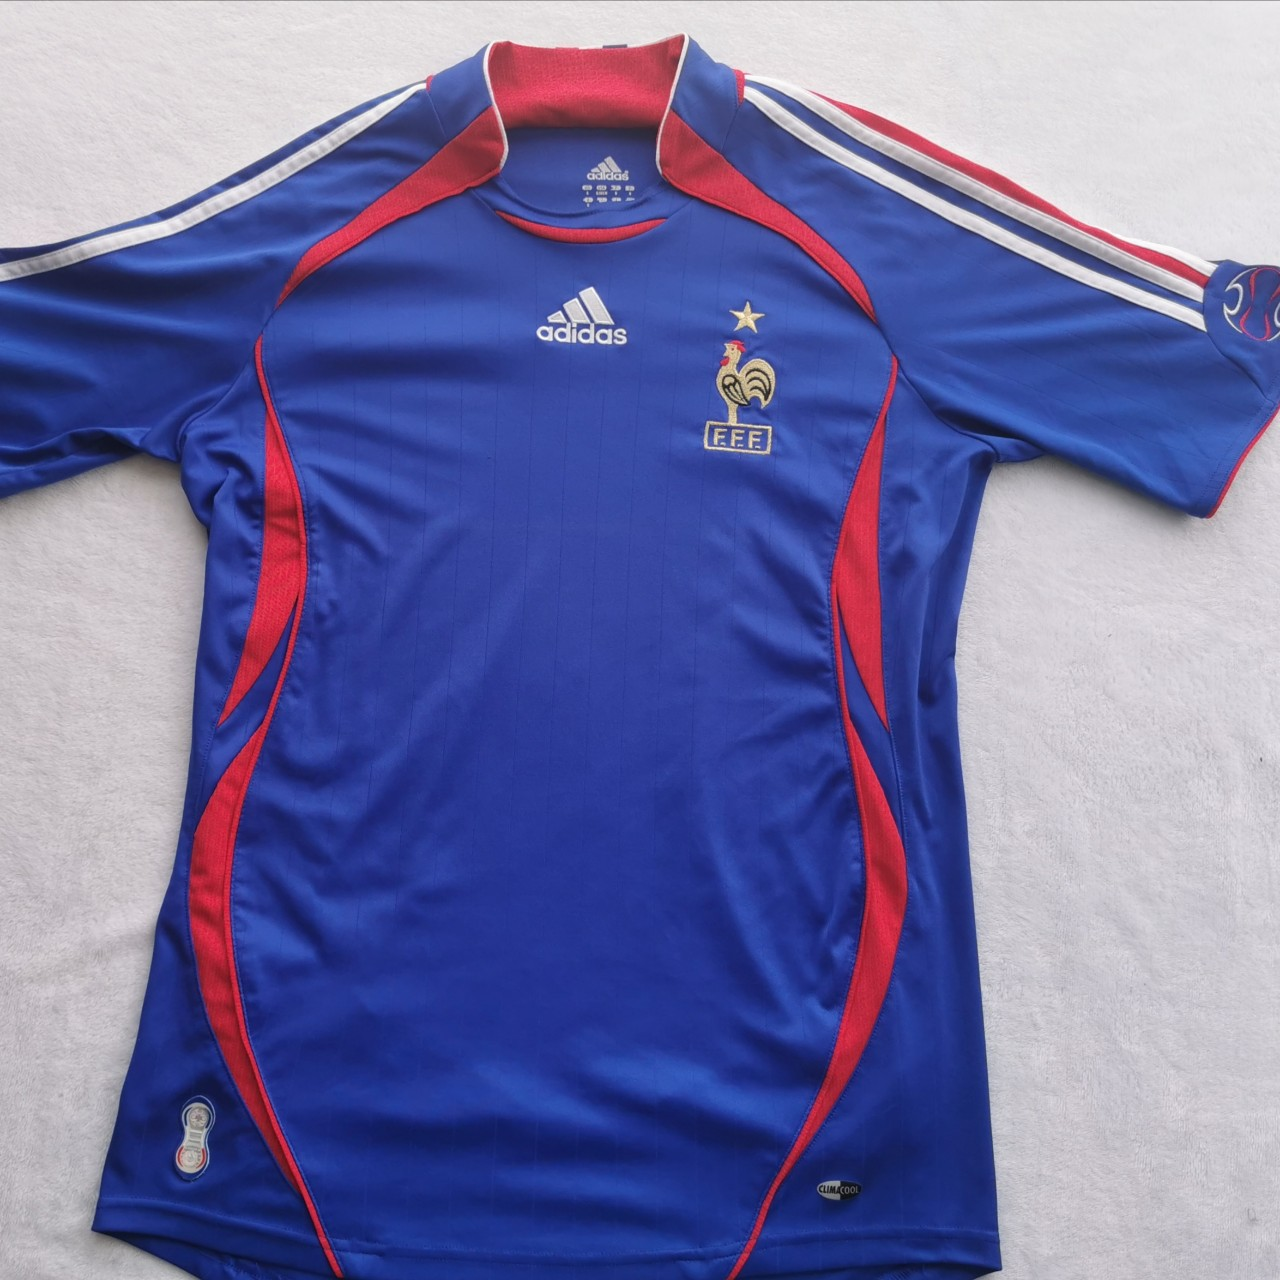 Adidas France home kit from 2006-2007 in which they... - Depop